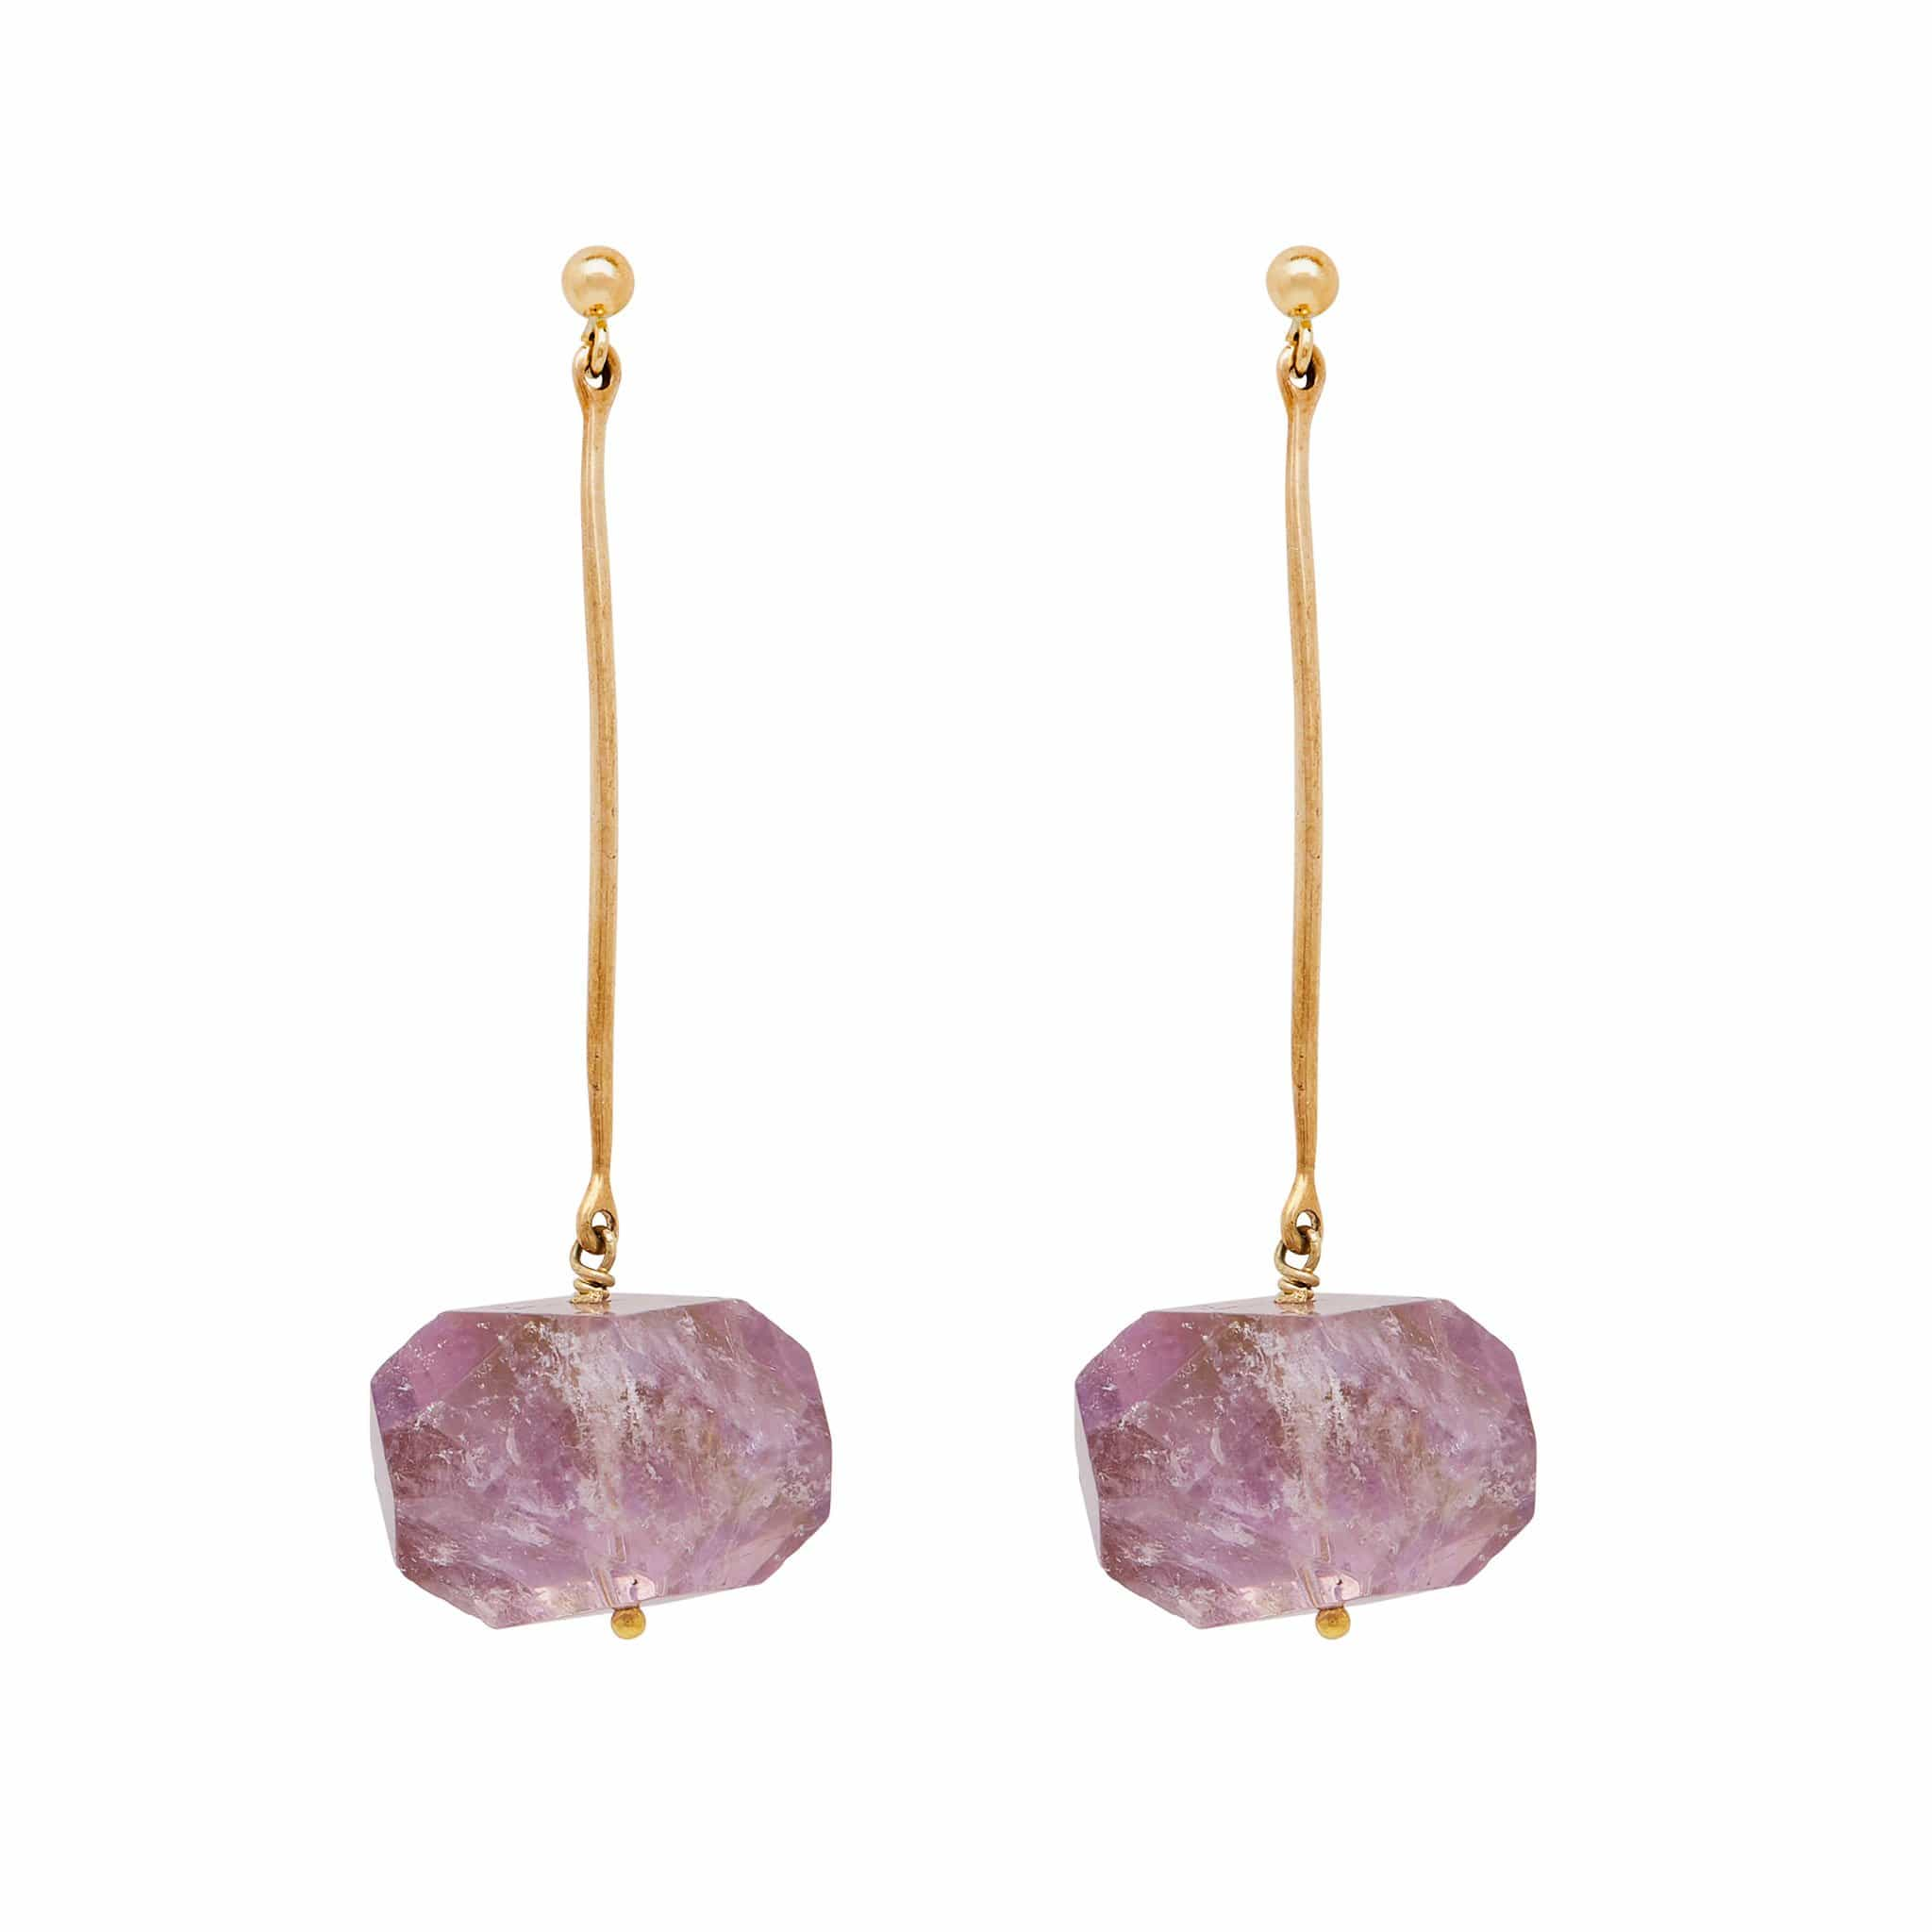 Julie Cohn Design. Bronze Ametrine Earrings.